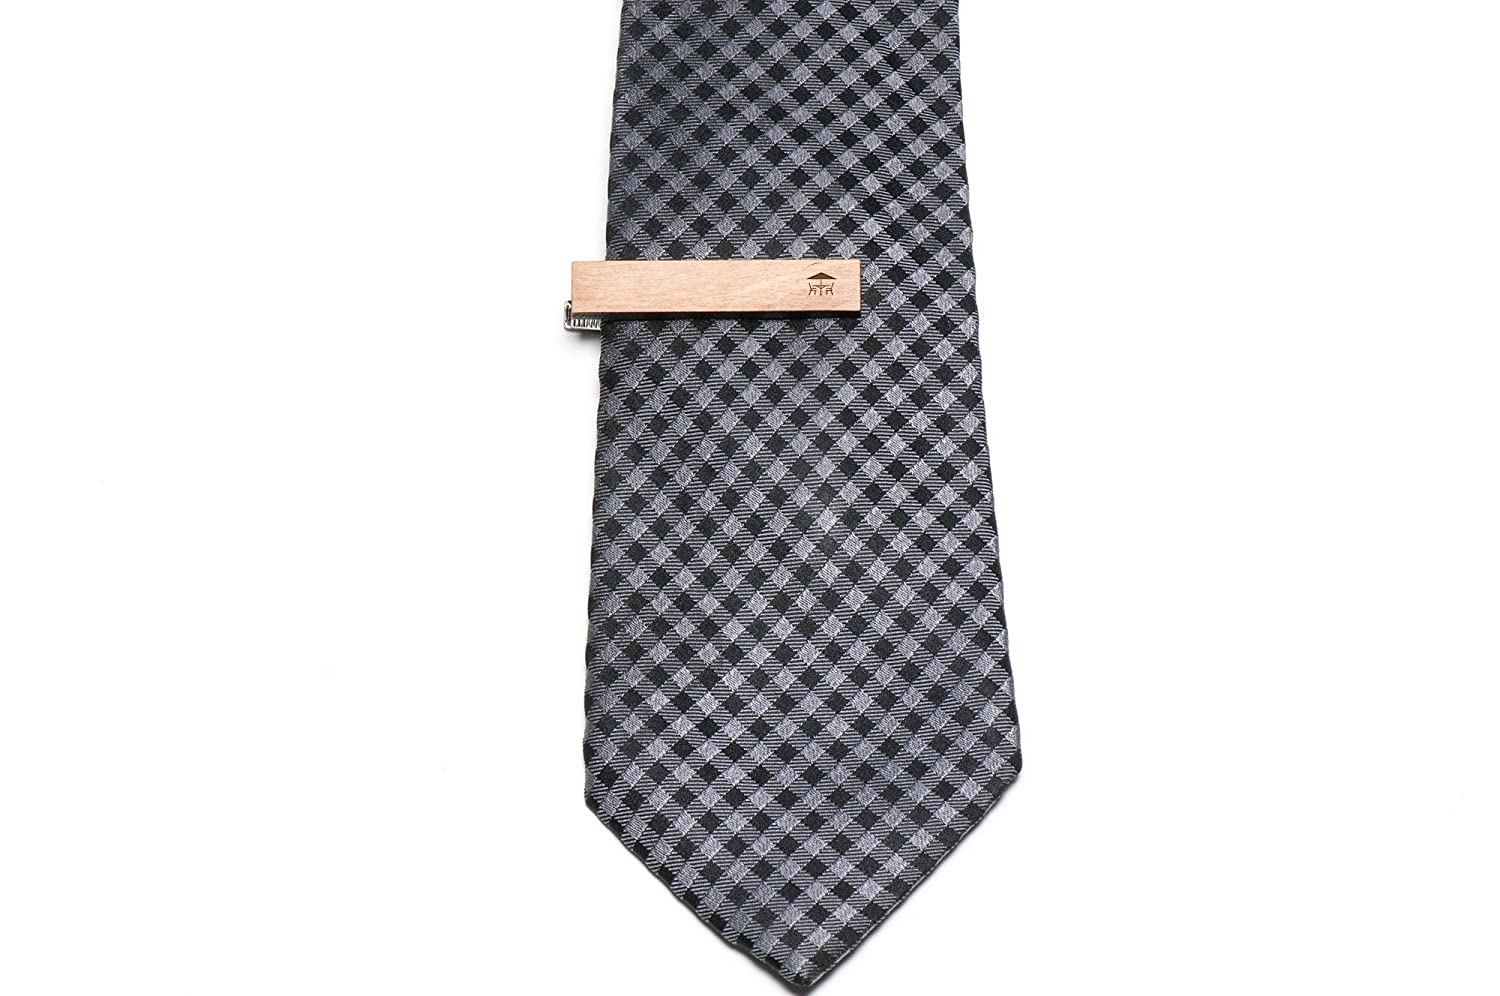 Wooden Accessories Company Wooden Tie Clips with Laser Engraved Terrace Seating Design Cherry Wood Tie Bar Engraved in The USA